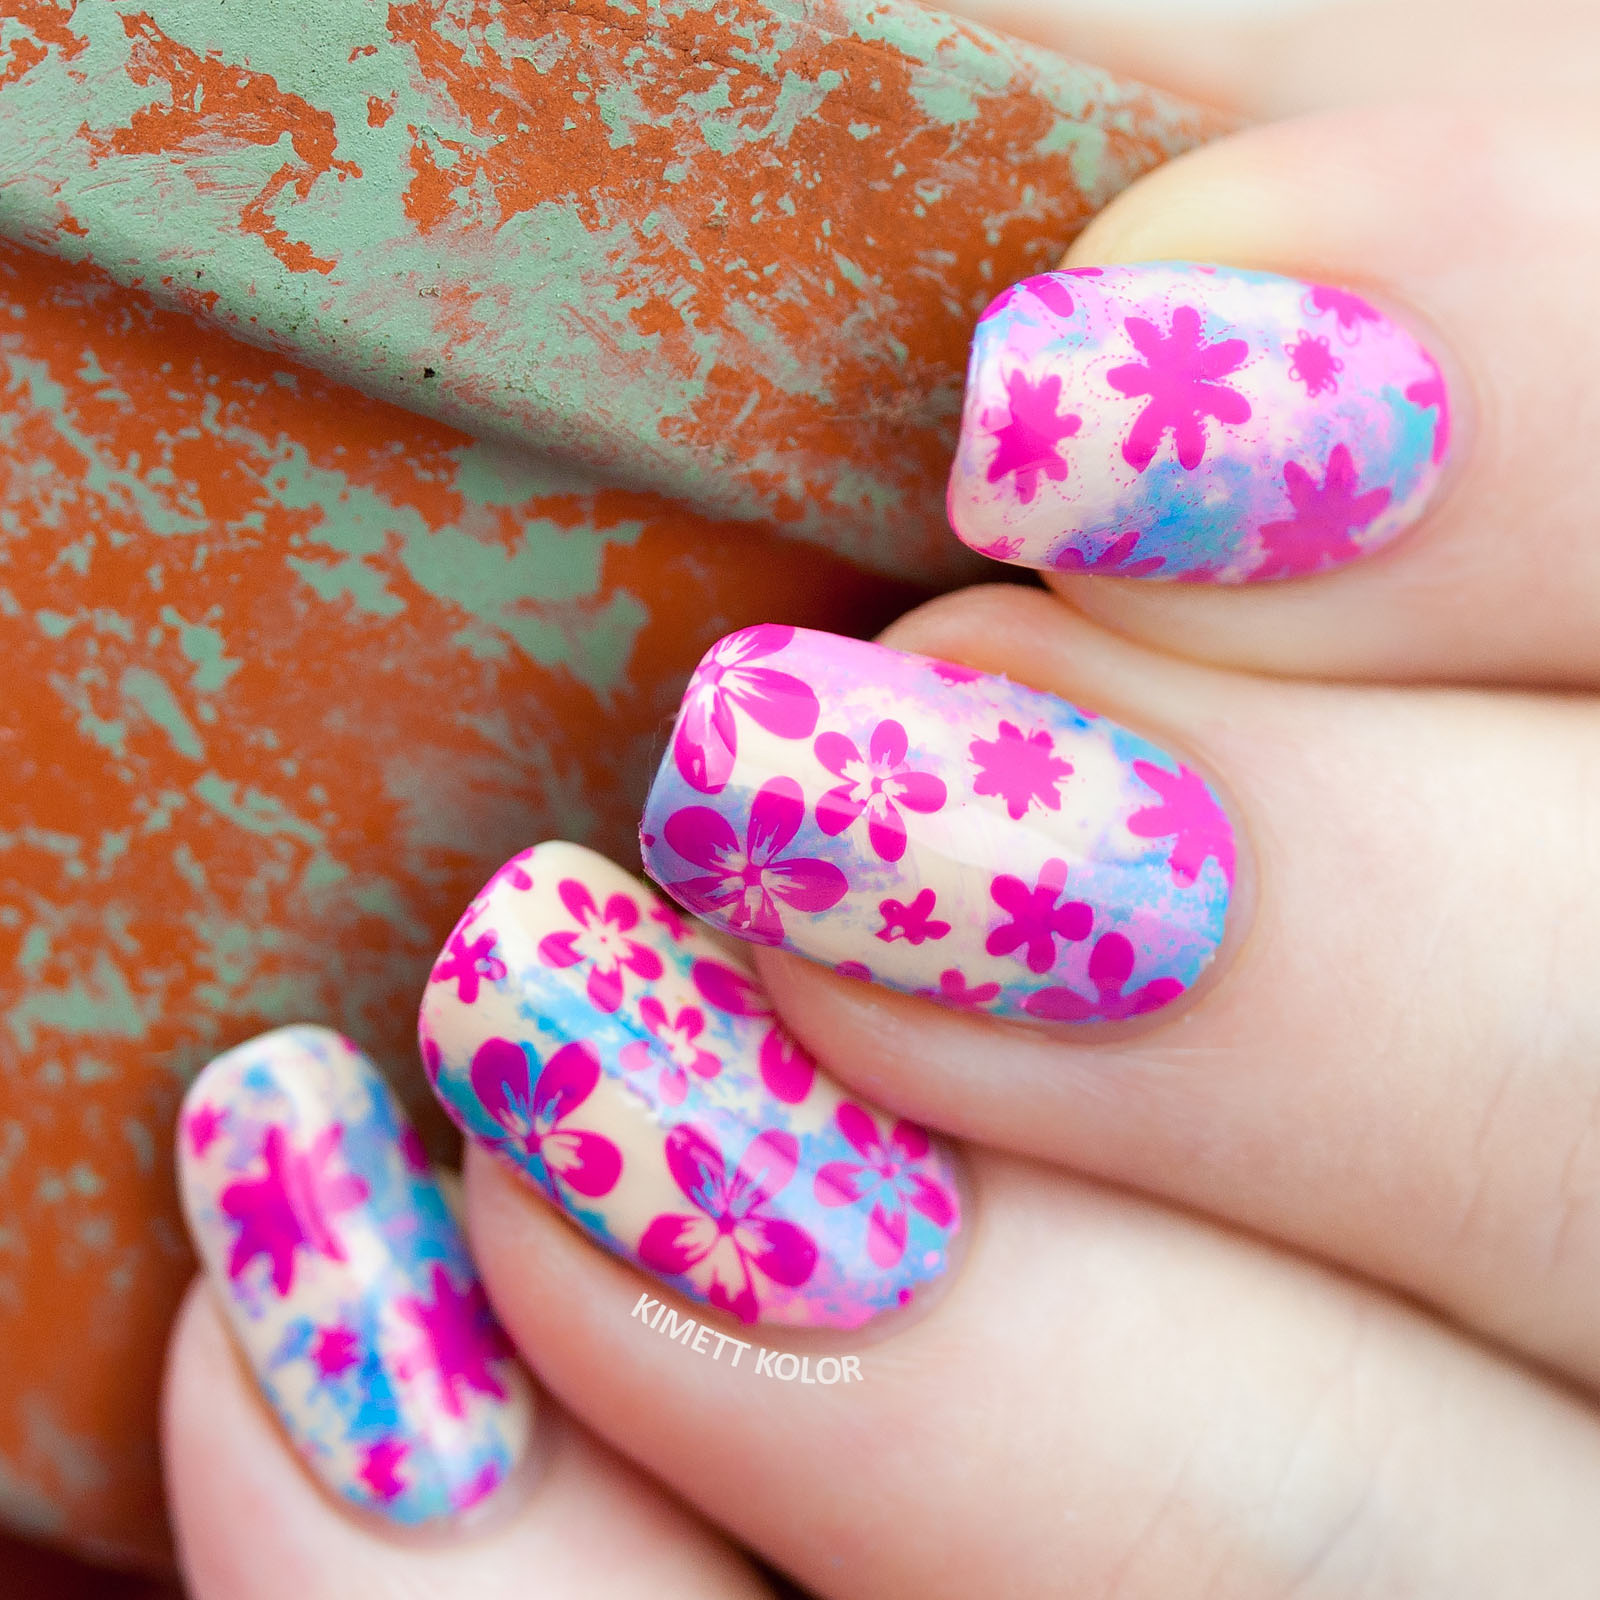 Kimett Kolor Floral Stamping on Acid Wash polish base